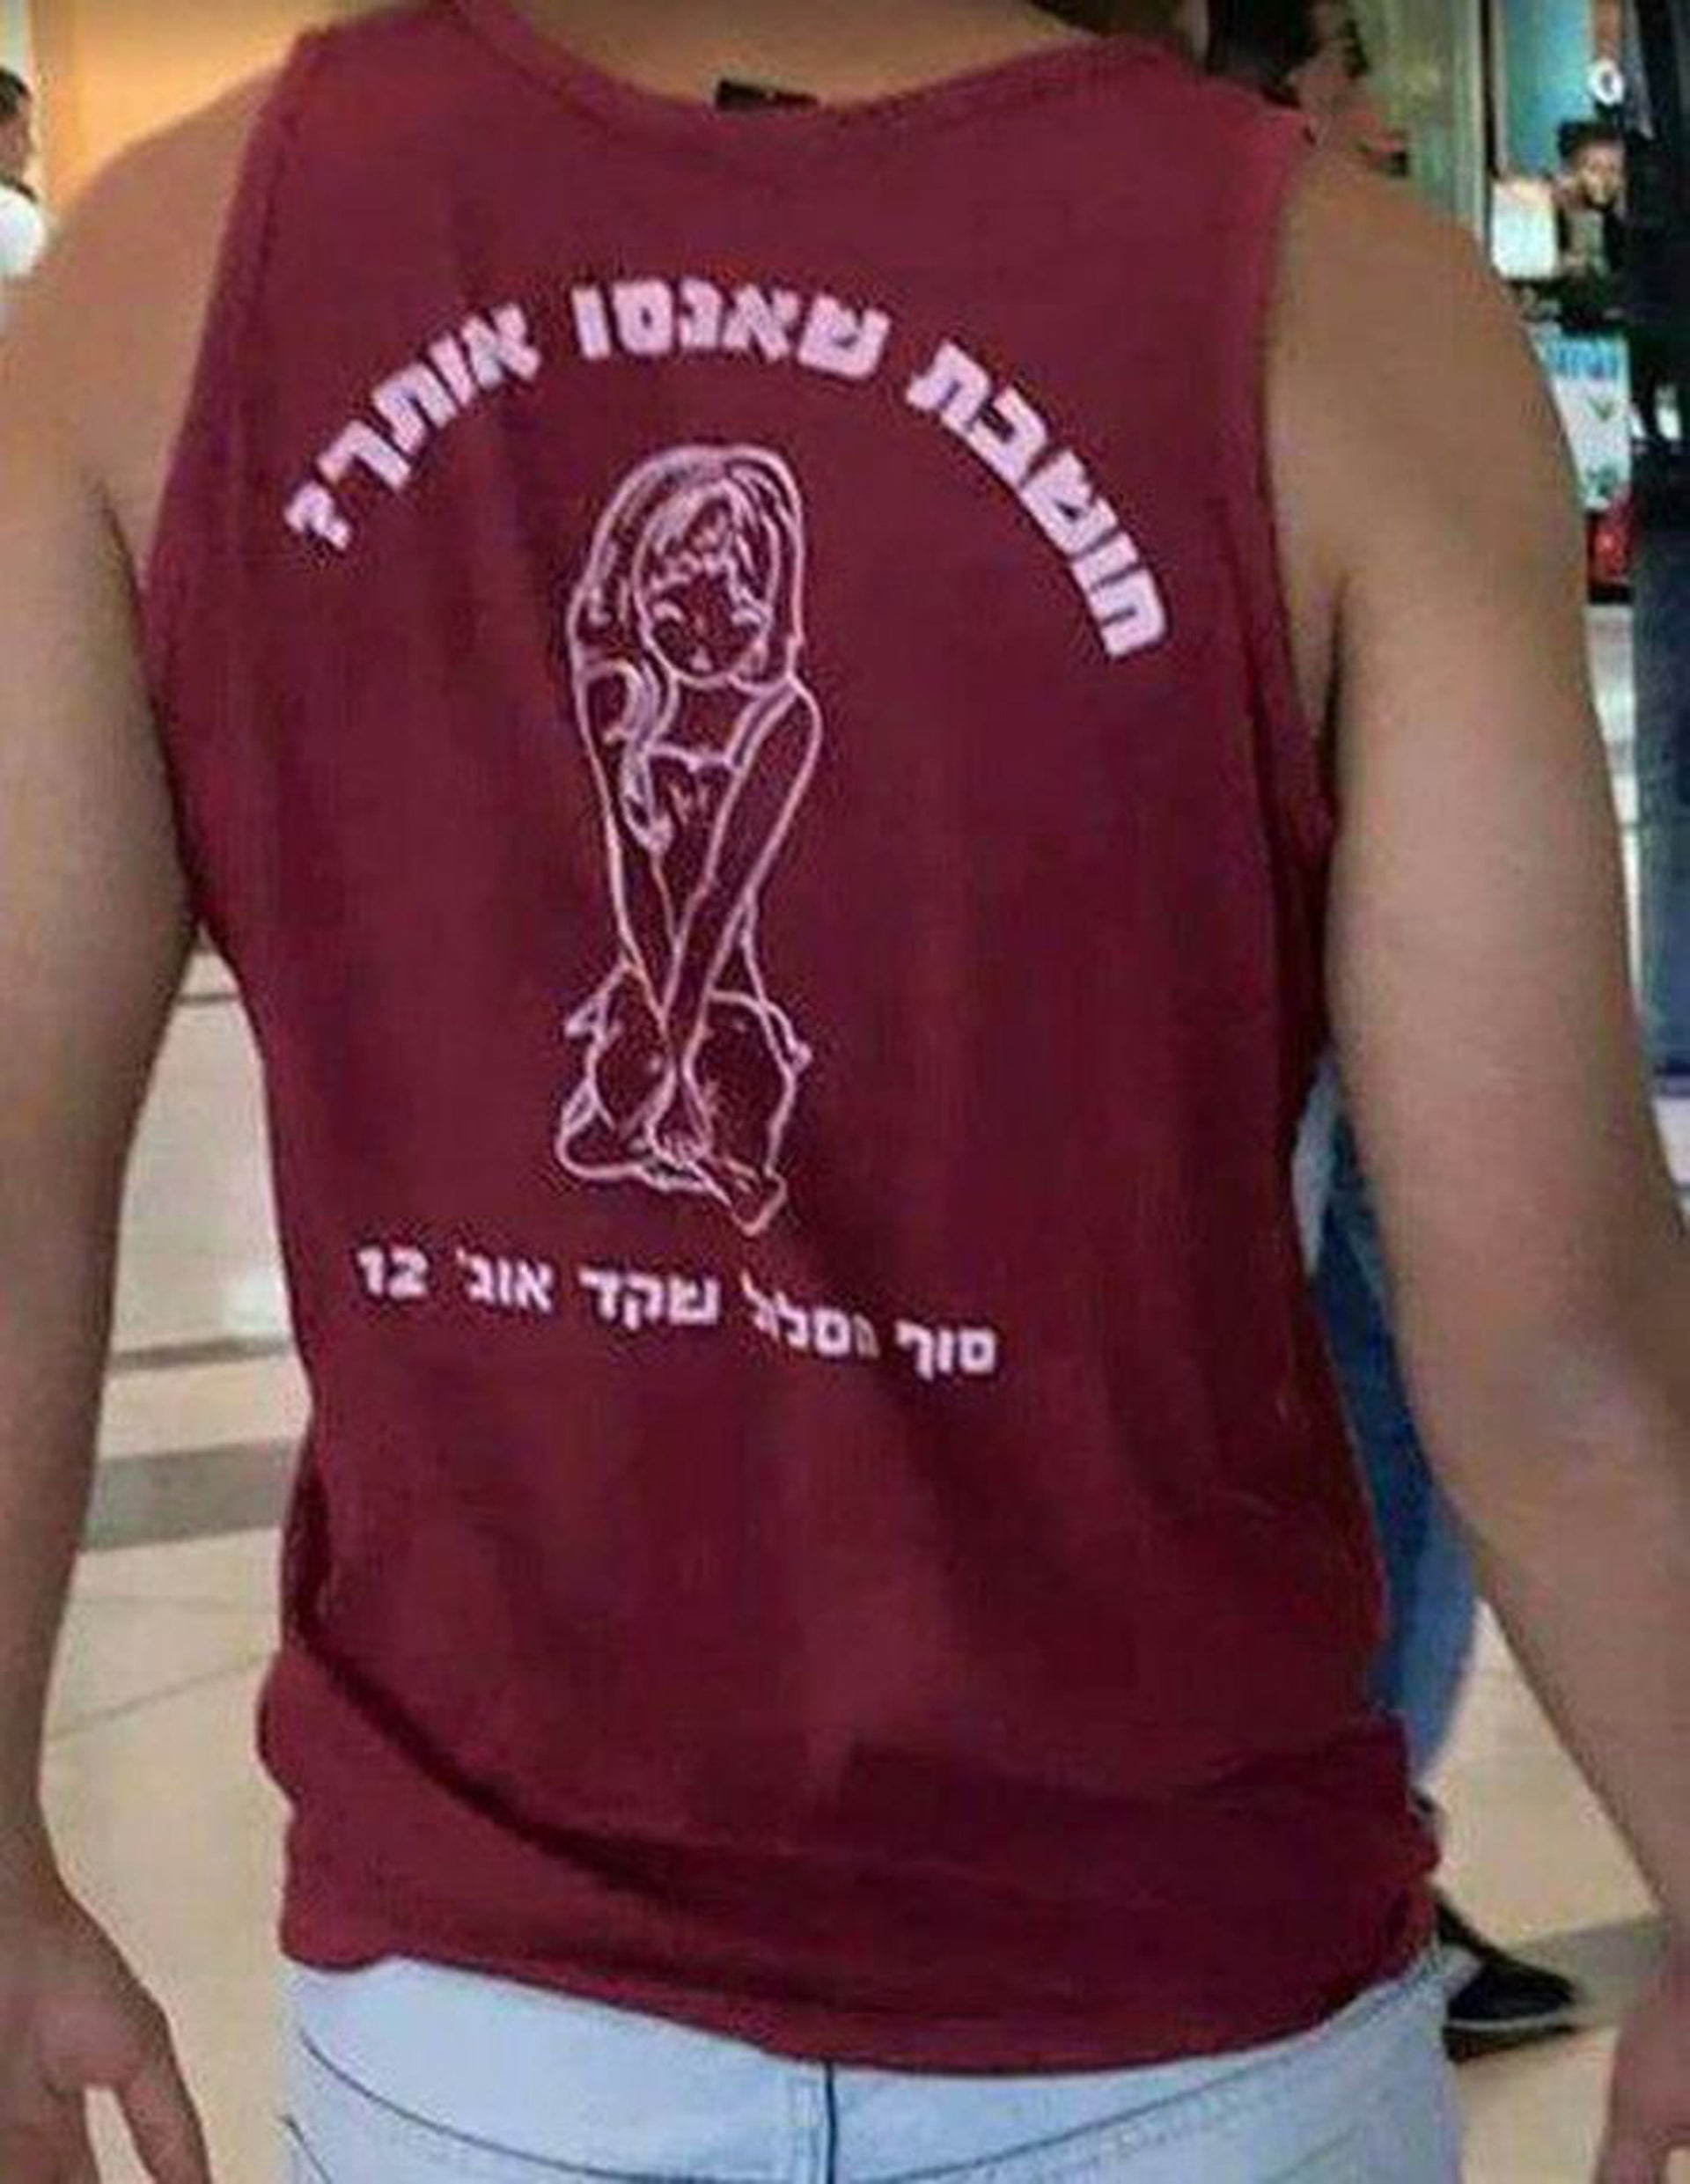 A top that says 'Think you were raped? End of course ... Division 12.'